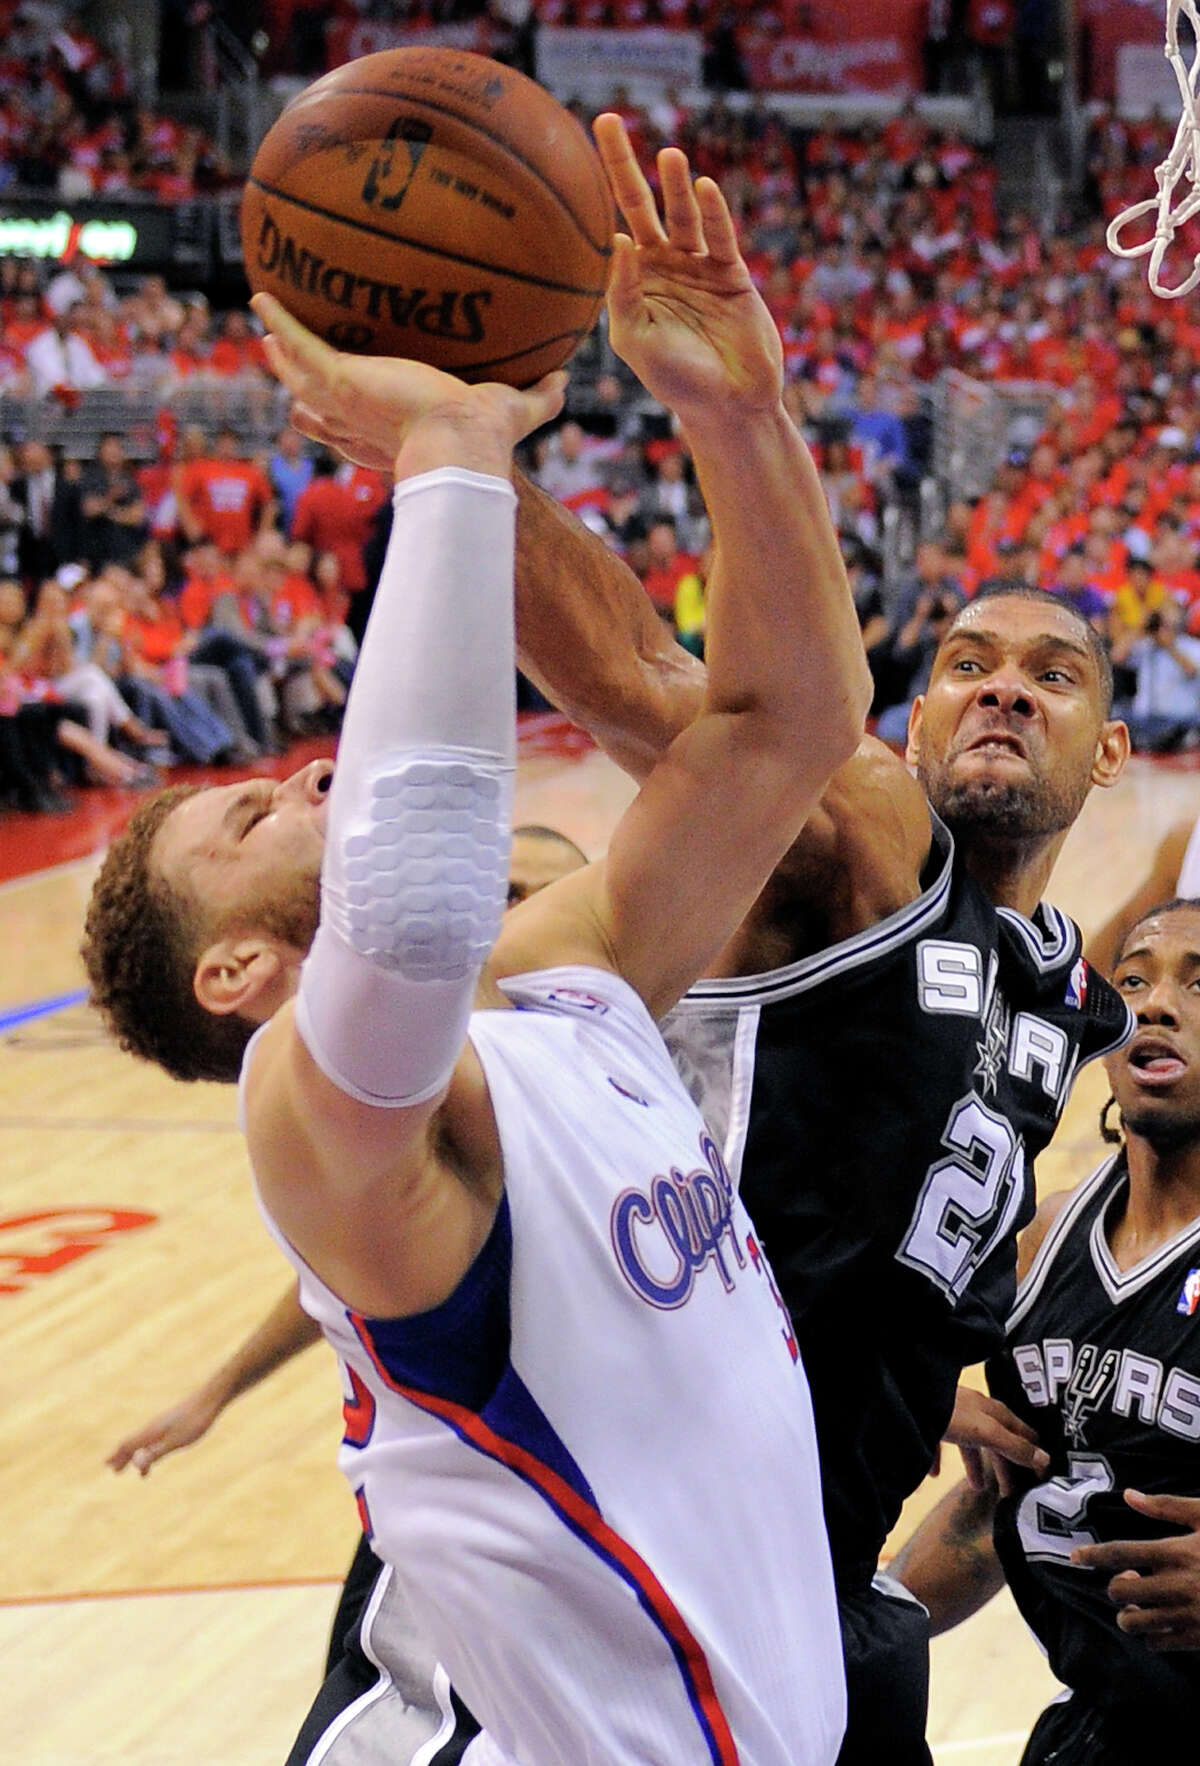 The Spurs' Tim Duncan, right, finished with three blocks, including this stuff of a Blake Griffin shot.